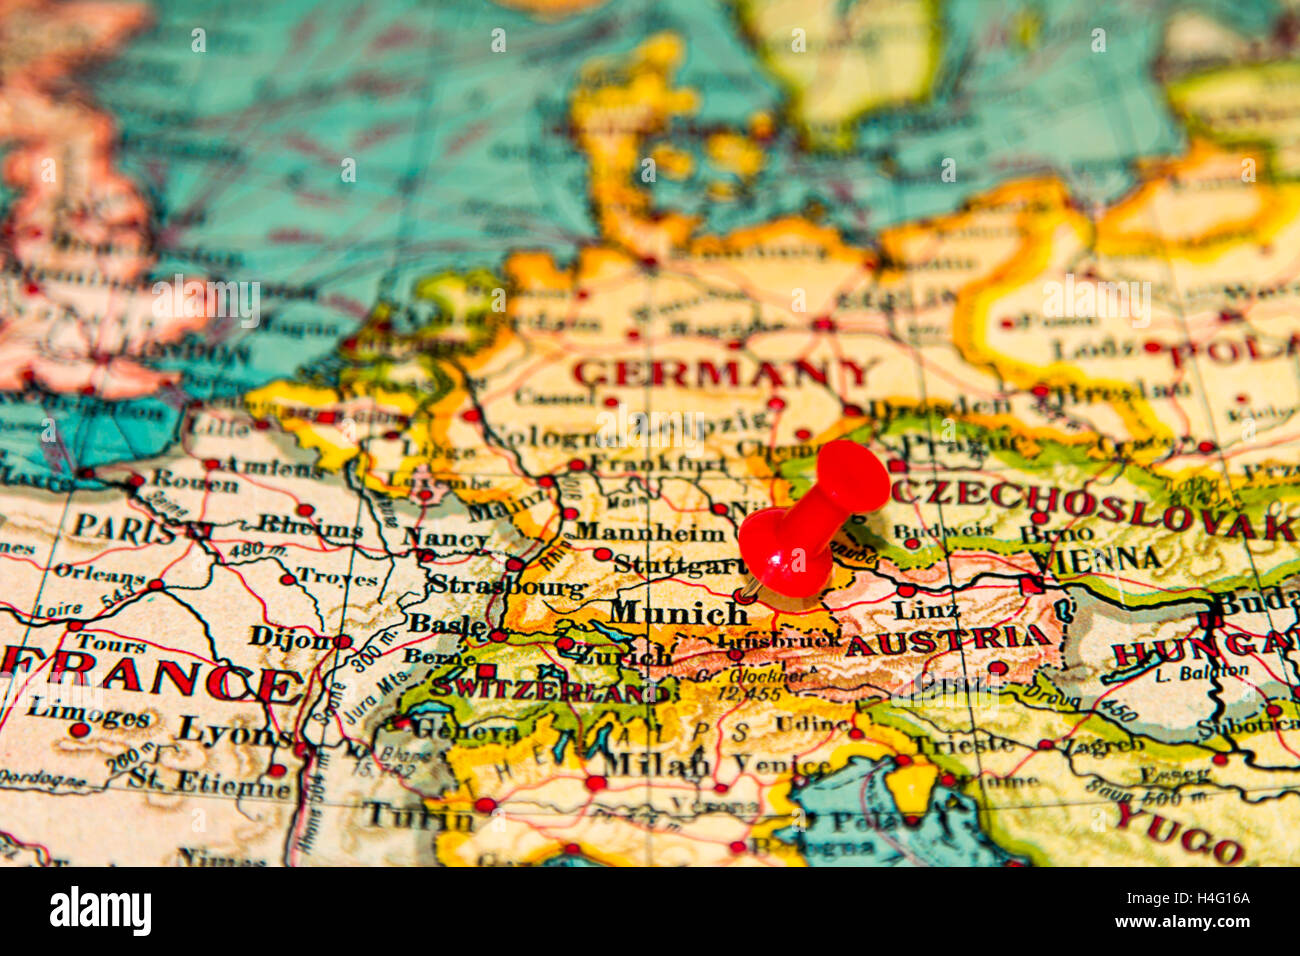 Munich on map stock photos munich on map stock images alamy munich germany pinned on vintage map of europe stock image gumiabroncs Choice Image